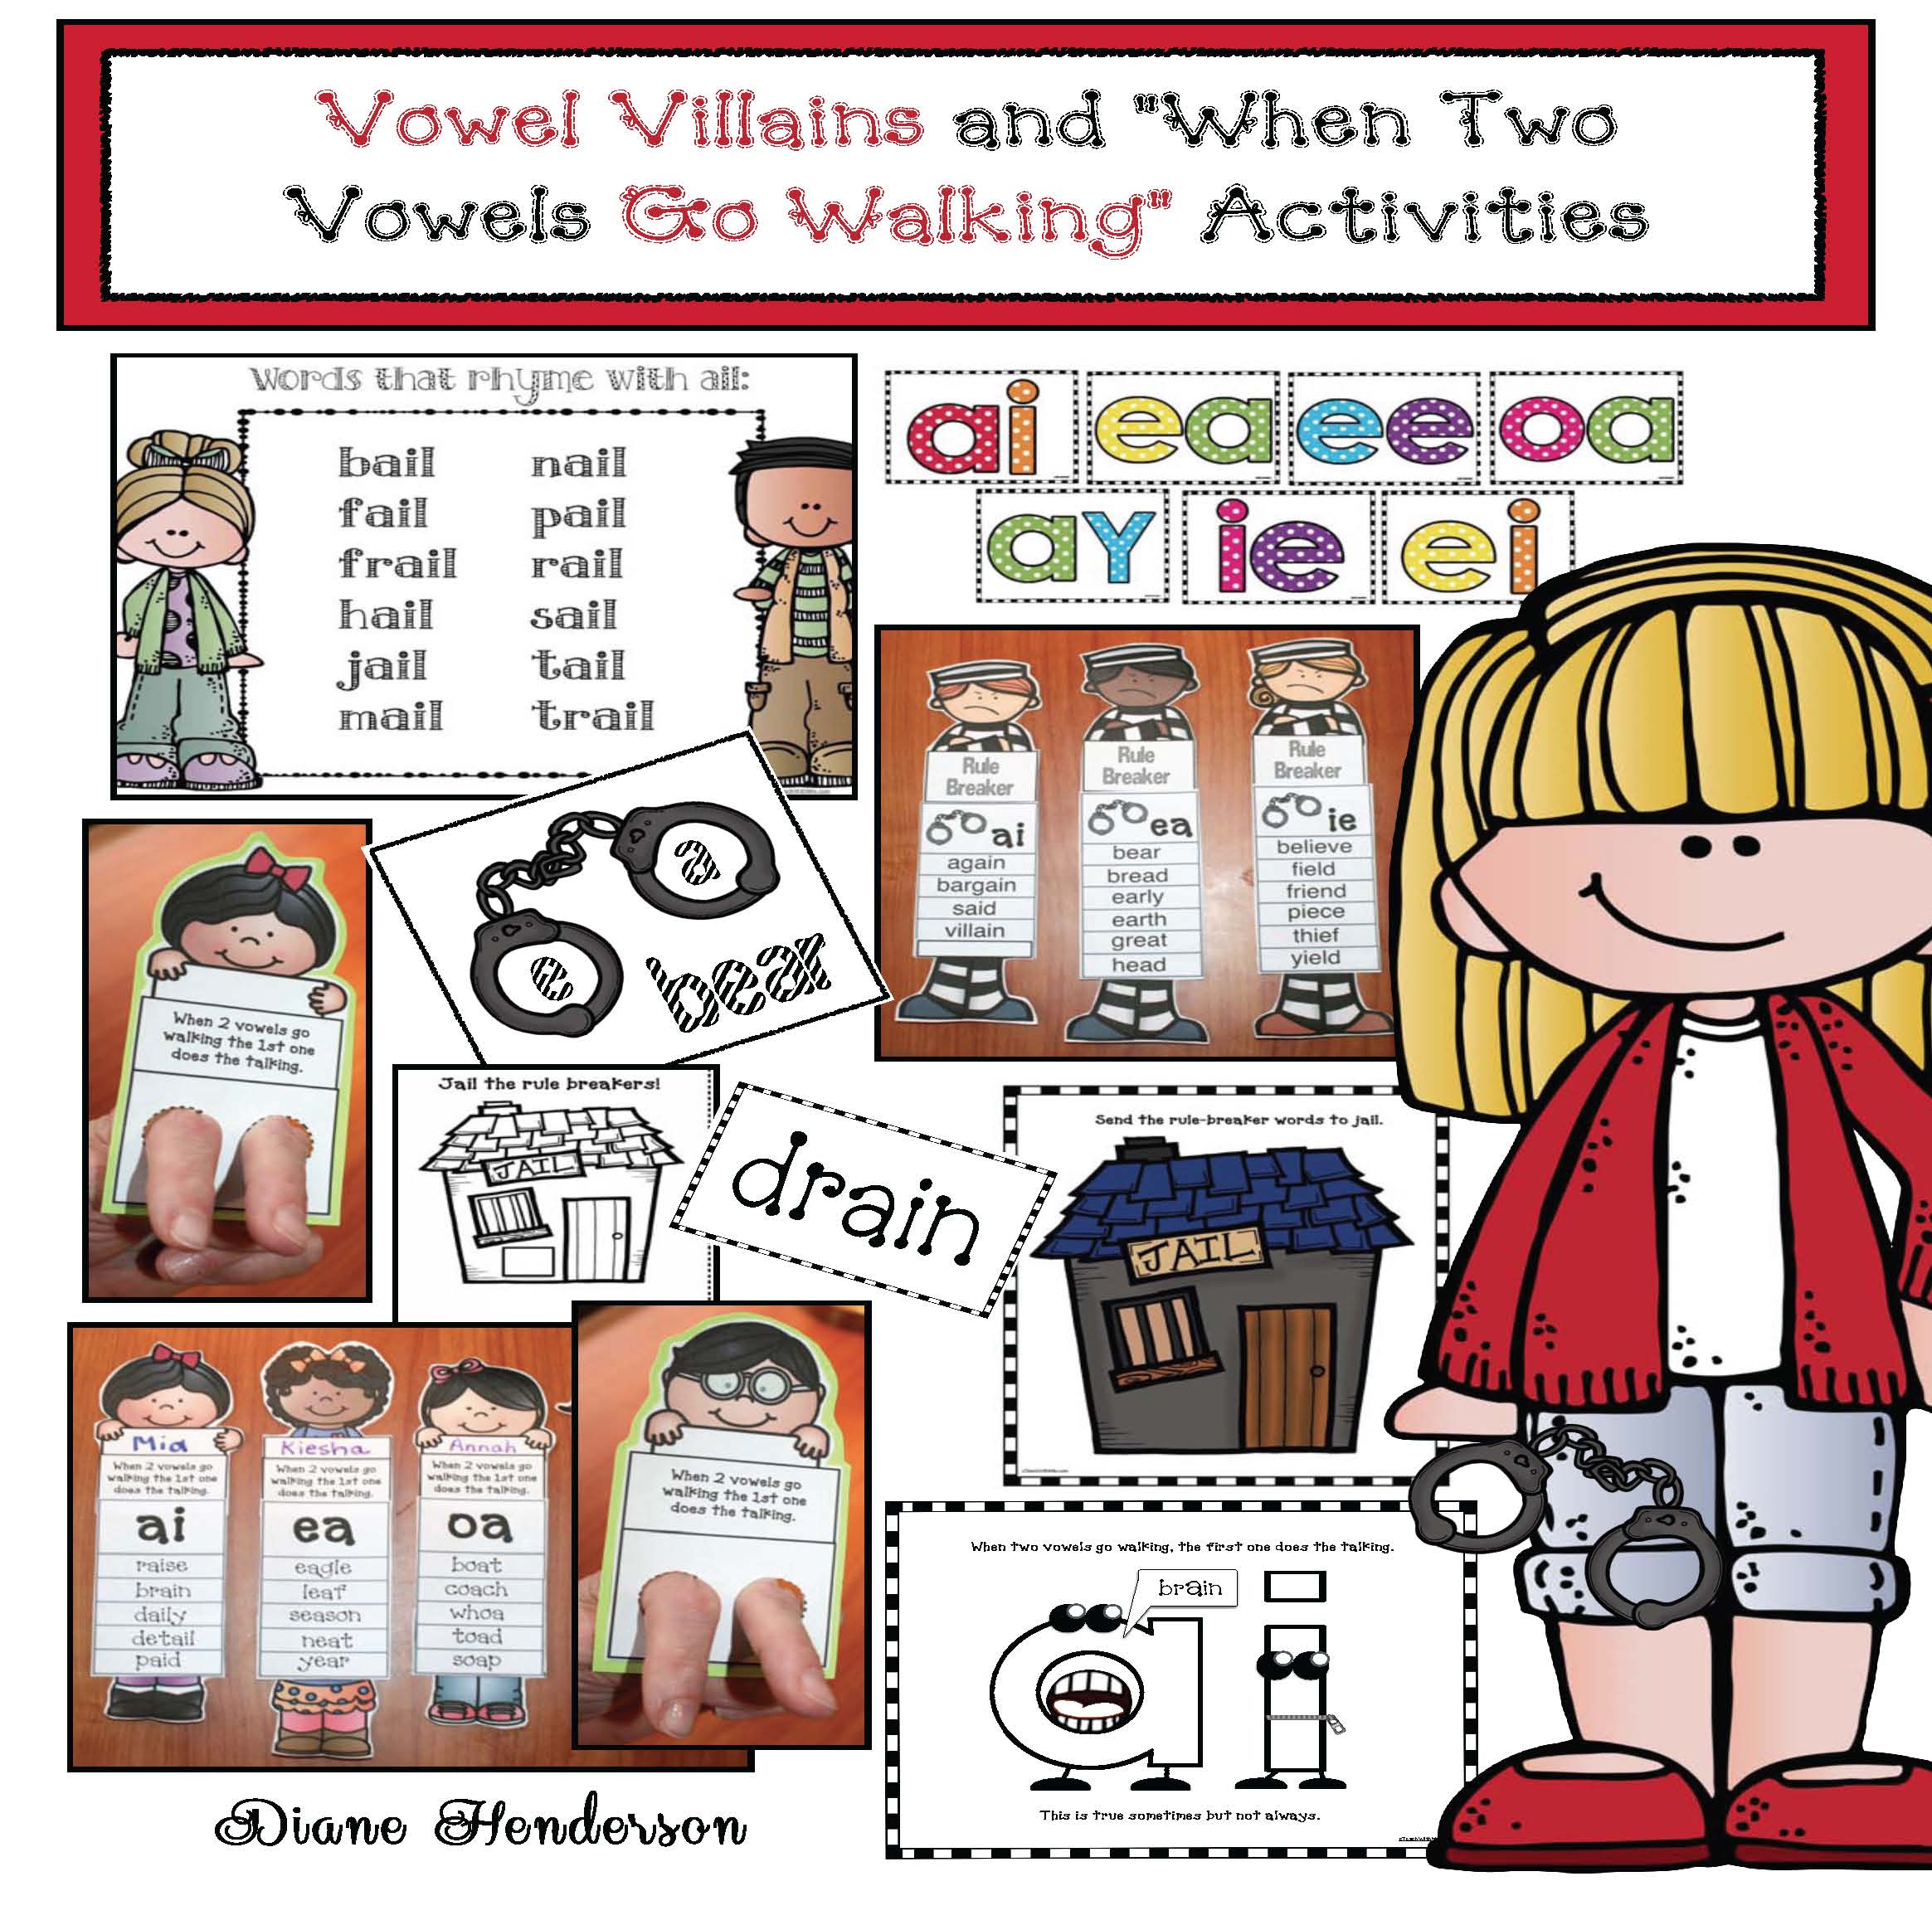 2 vowels go walking activities, 2 vowels go walking posters